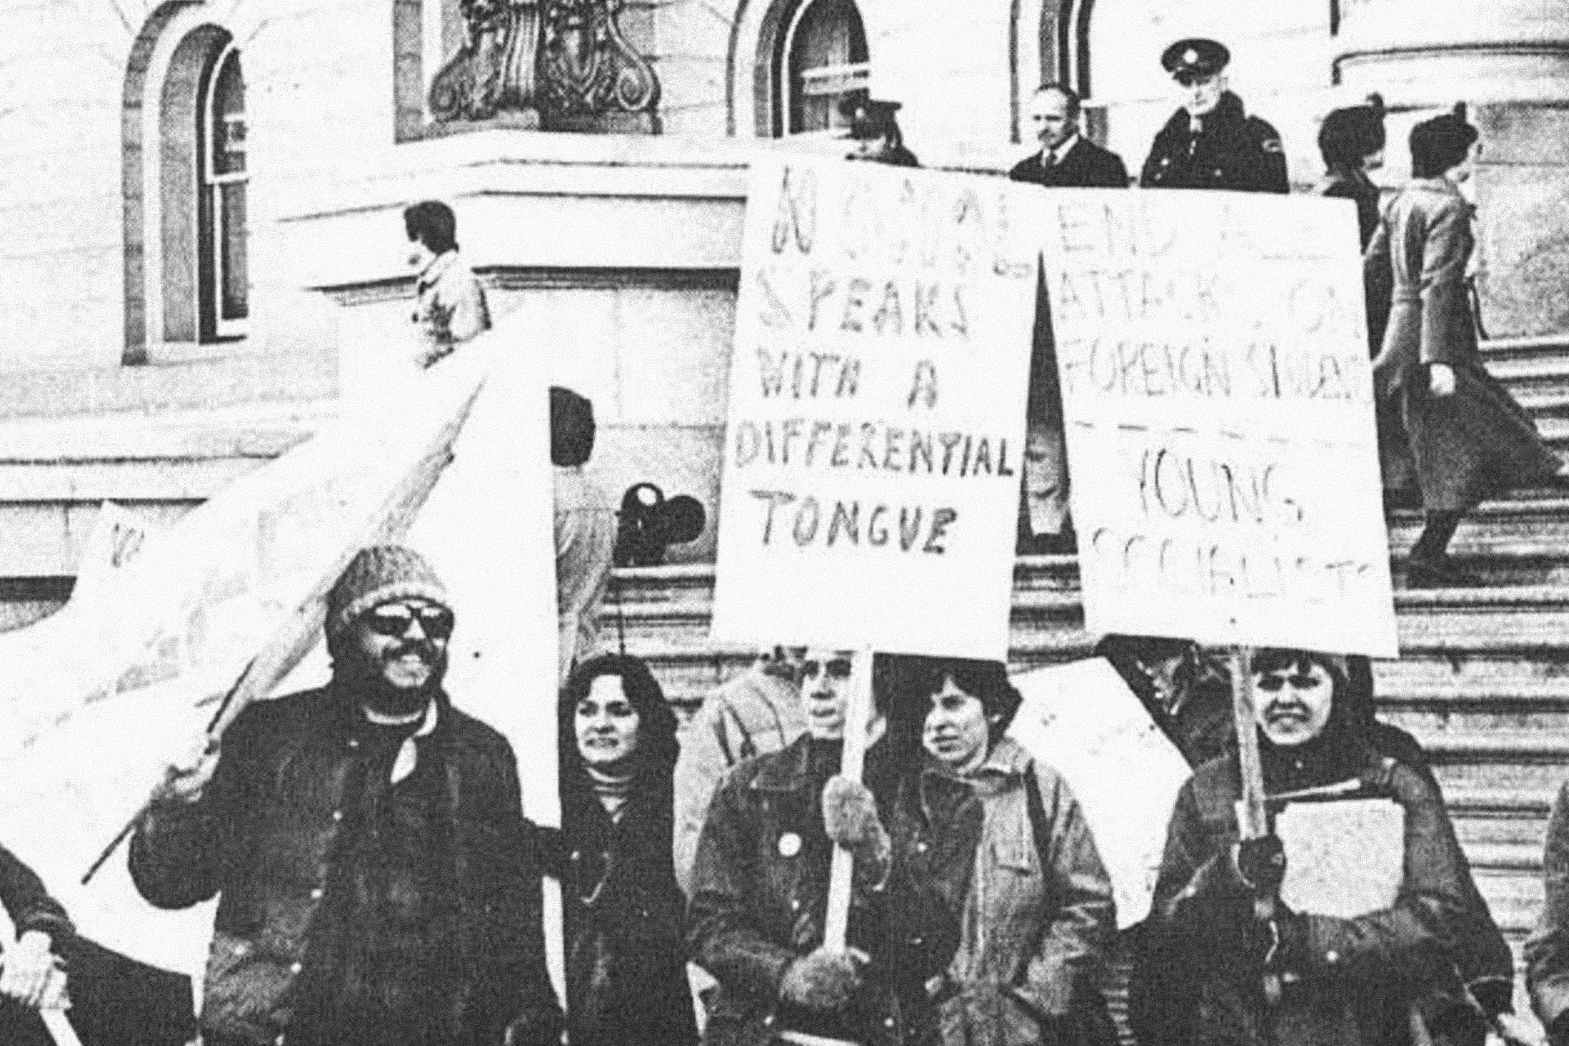 Students  protesting the international differential fee in 1977 at the Alberta Legislature.